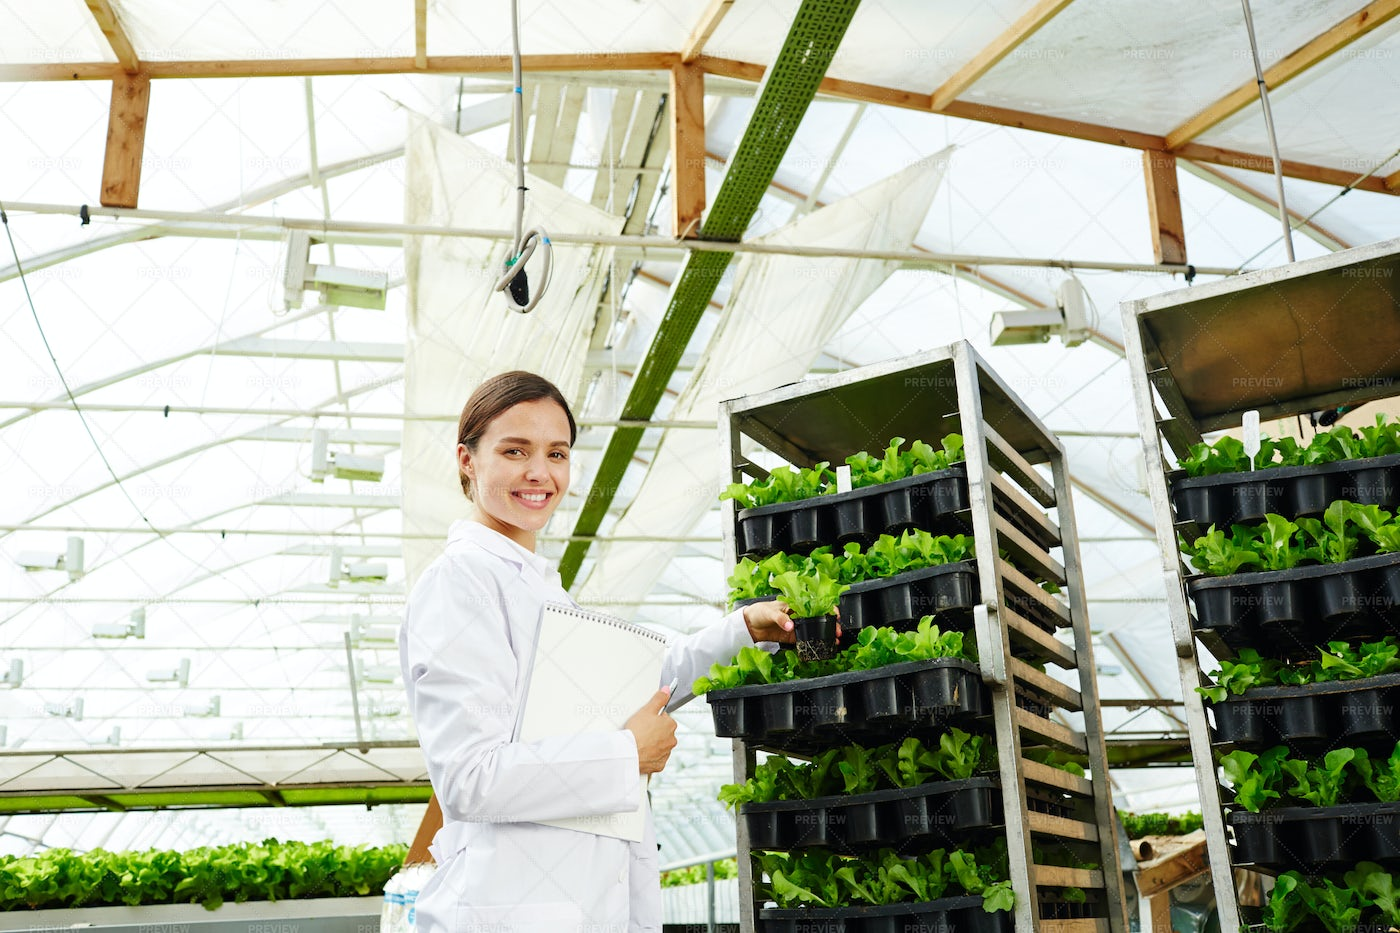 Happy Woman With Greenhouse Lettuce: Stock Photos